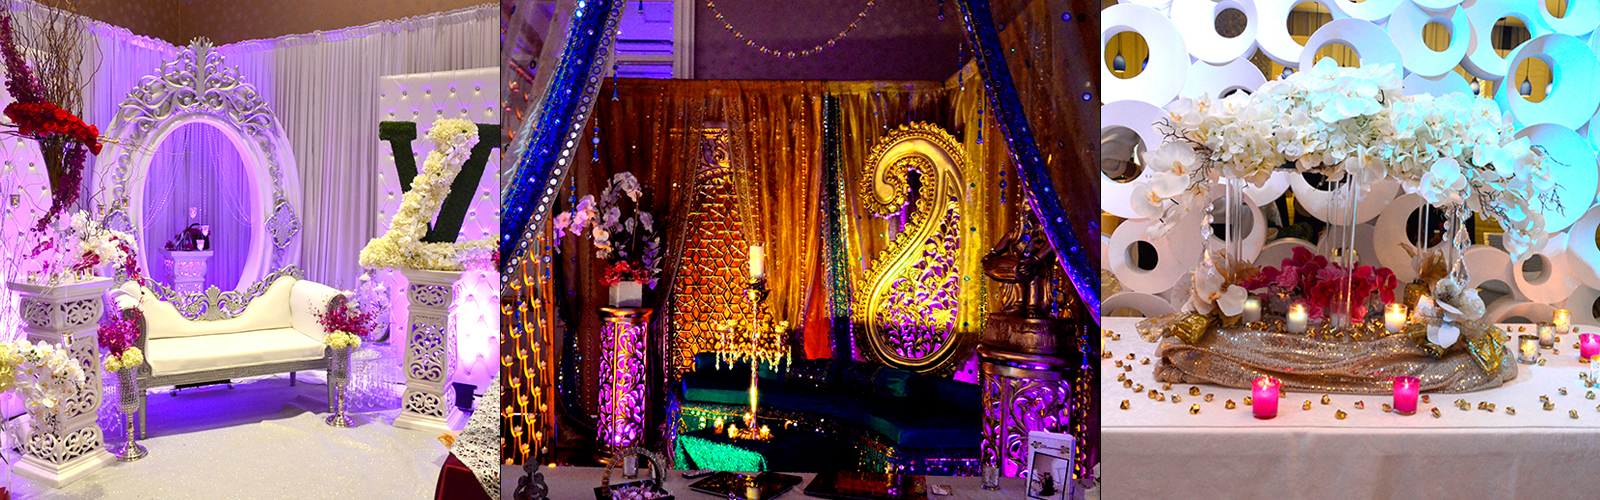 Contemporary Décor Ideas for a Low-Budget Indian Wedding | Glamorous